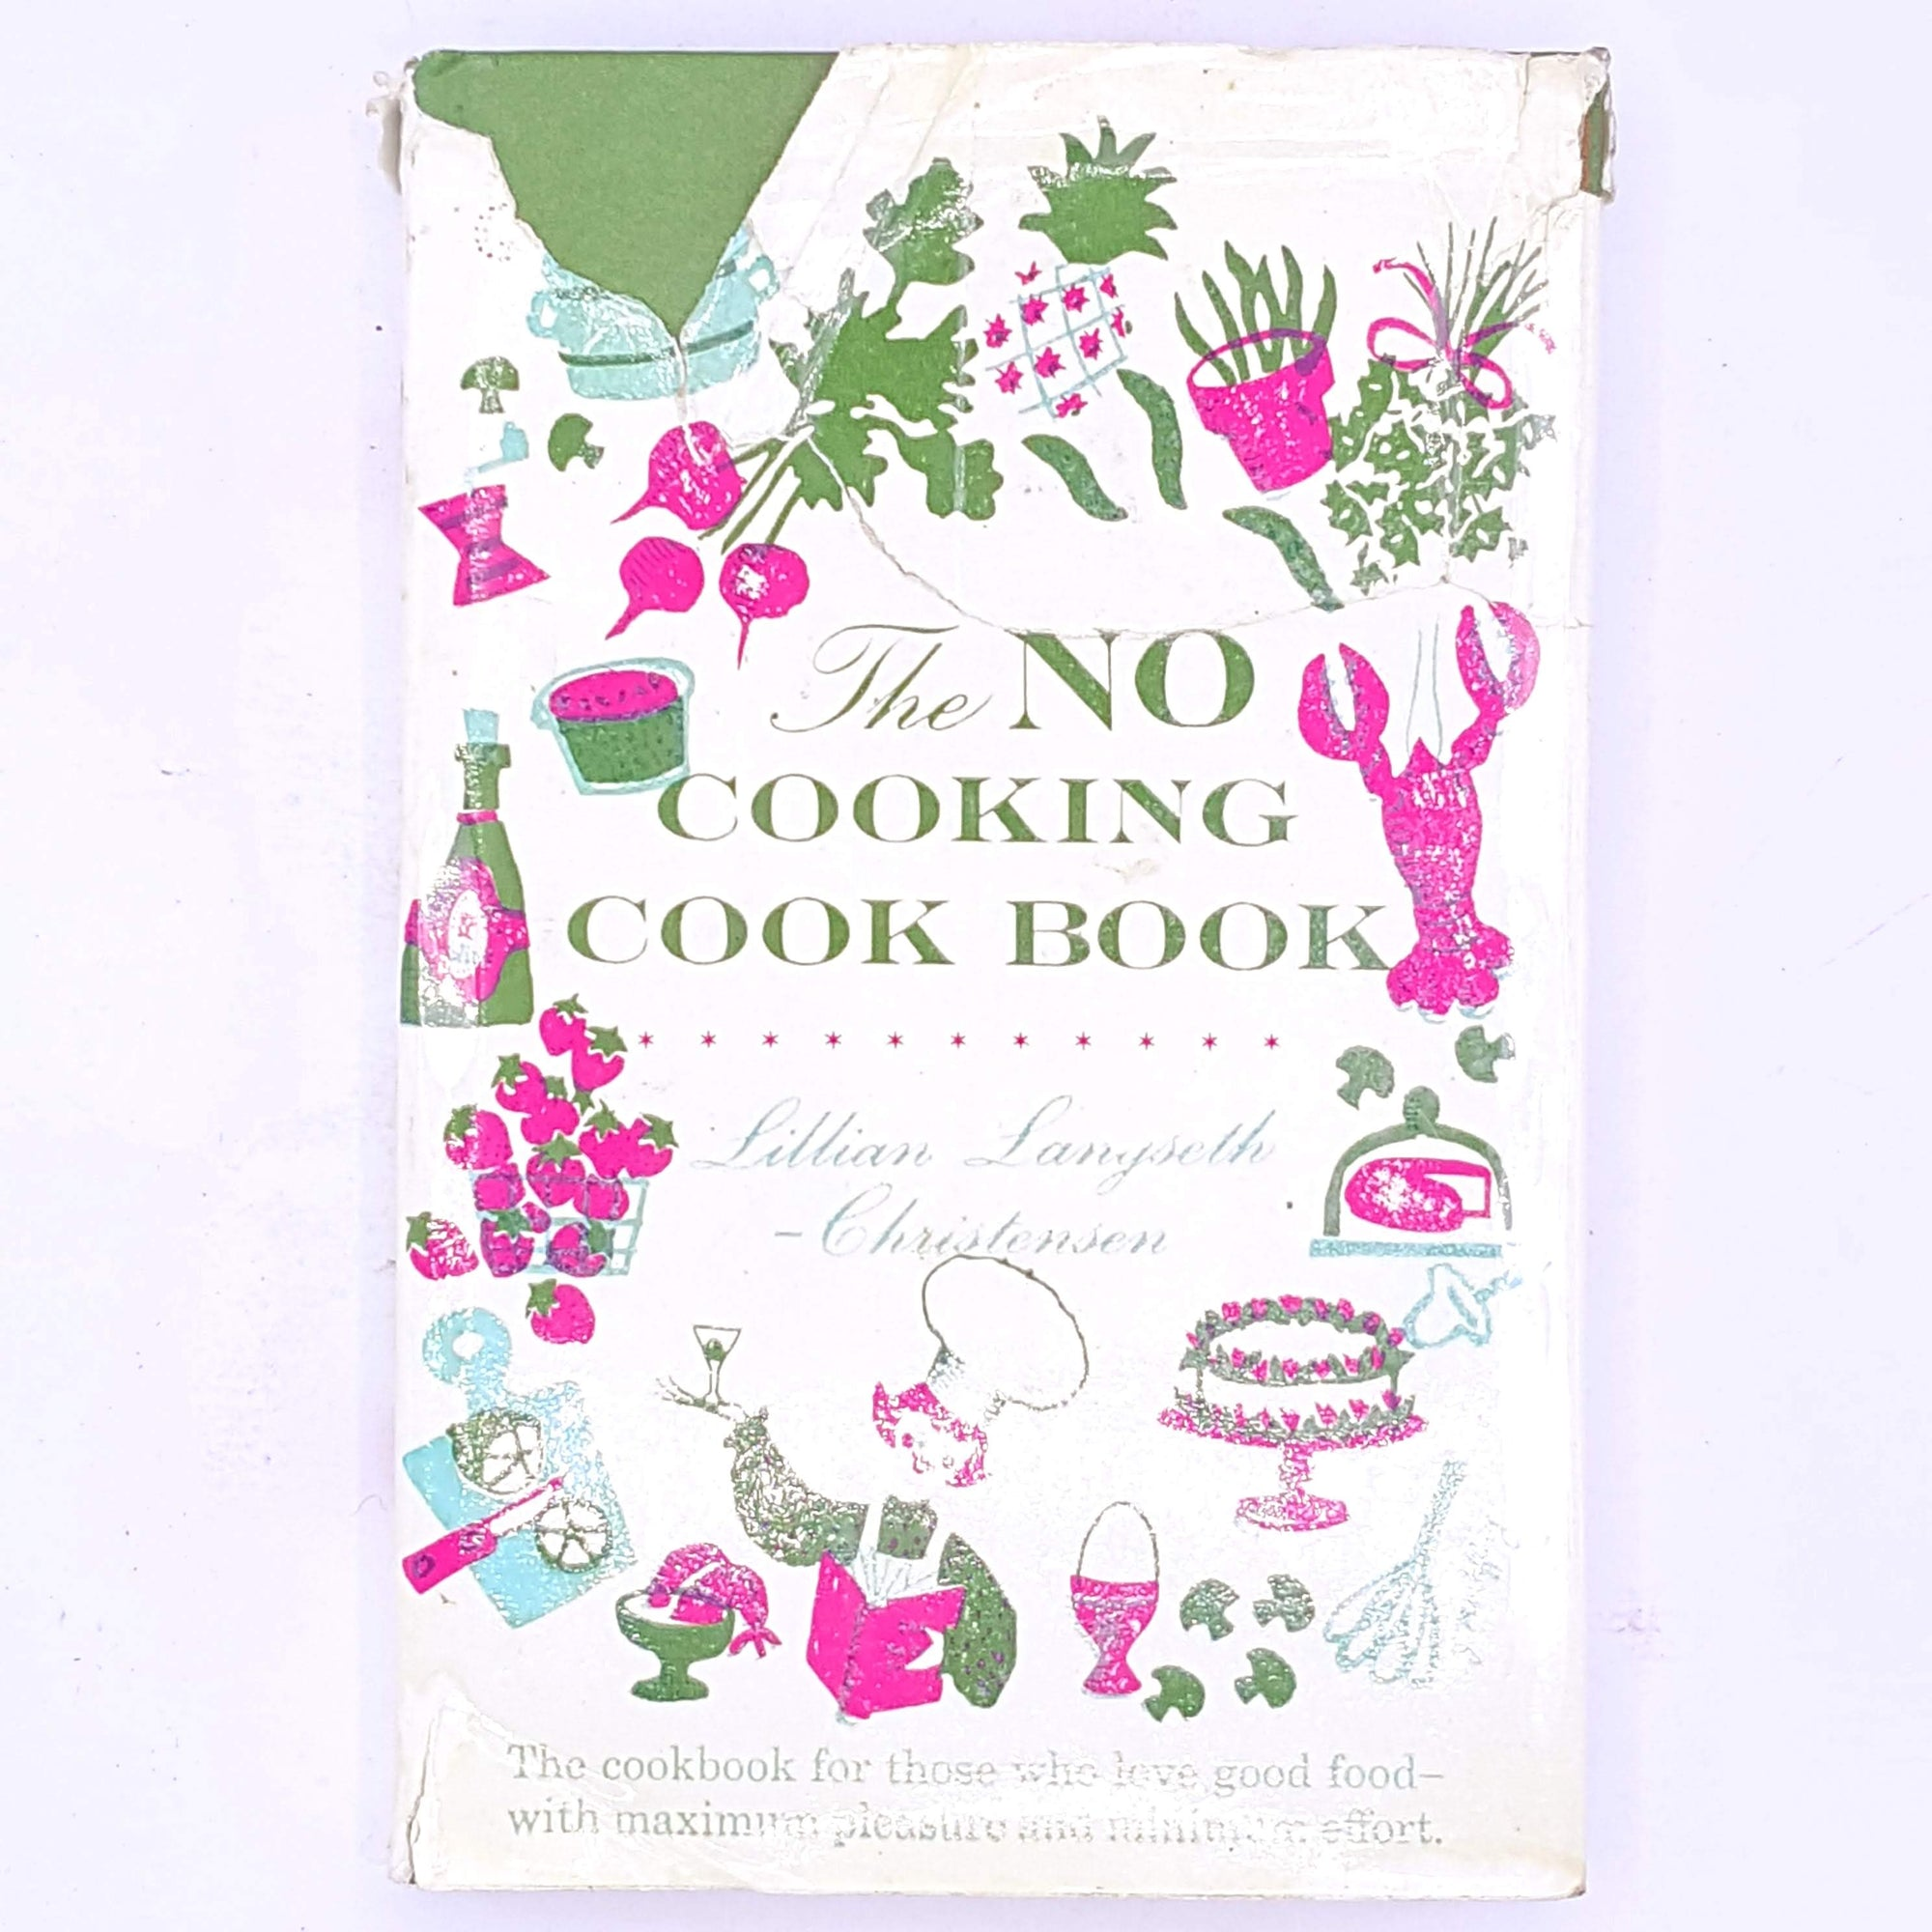 The NO Cooking Cook Book by Lillian Langseth-Christensen